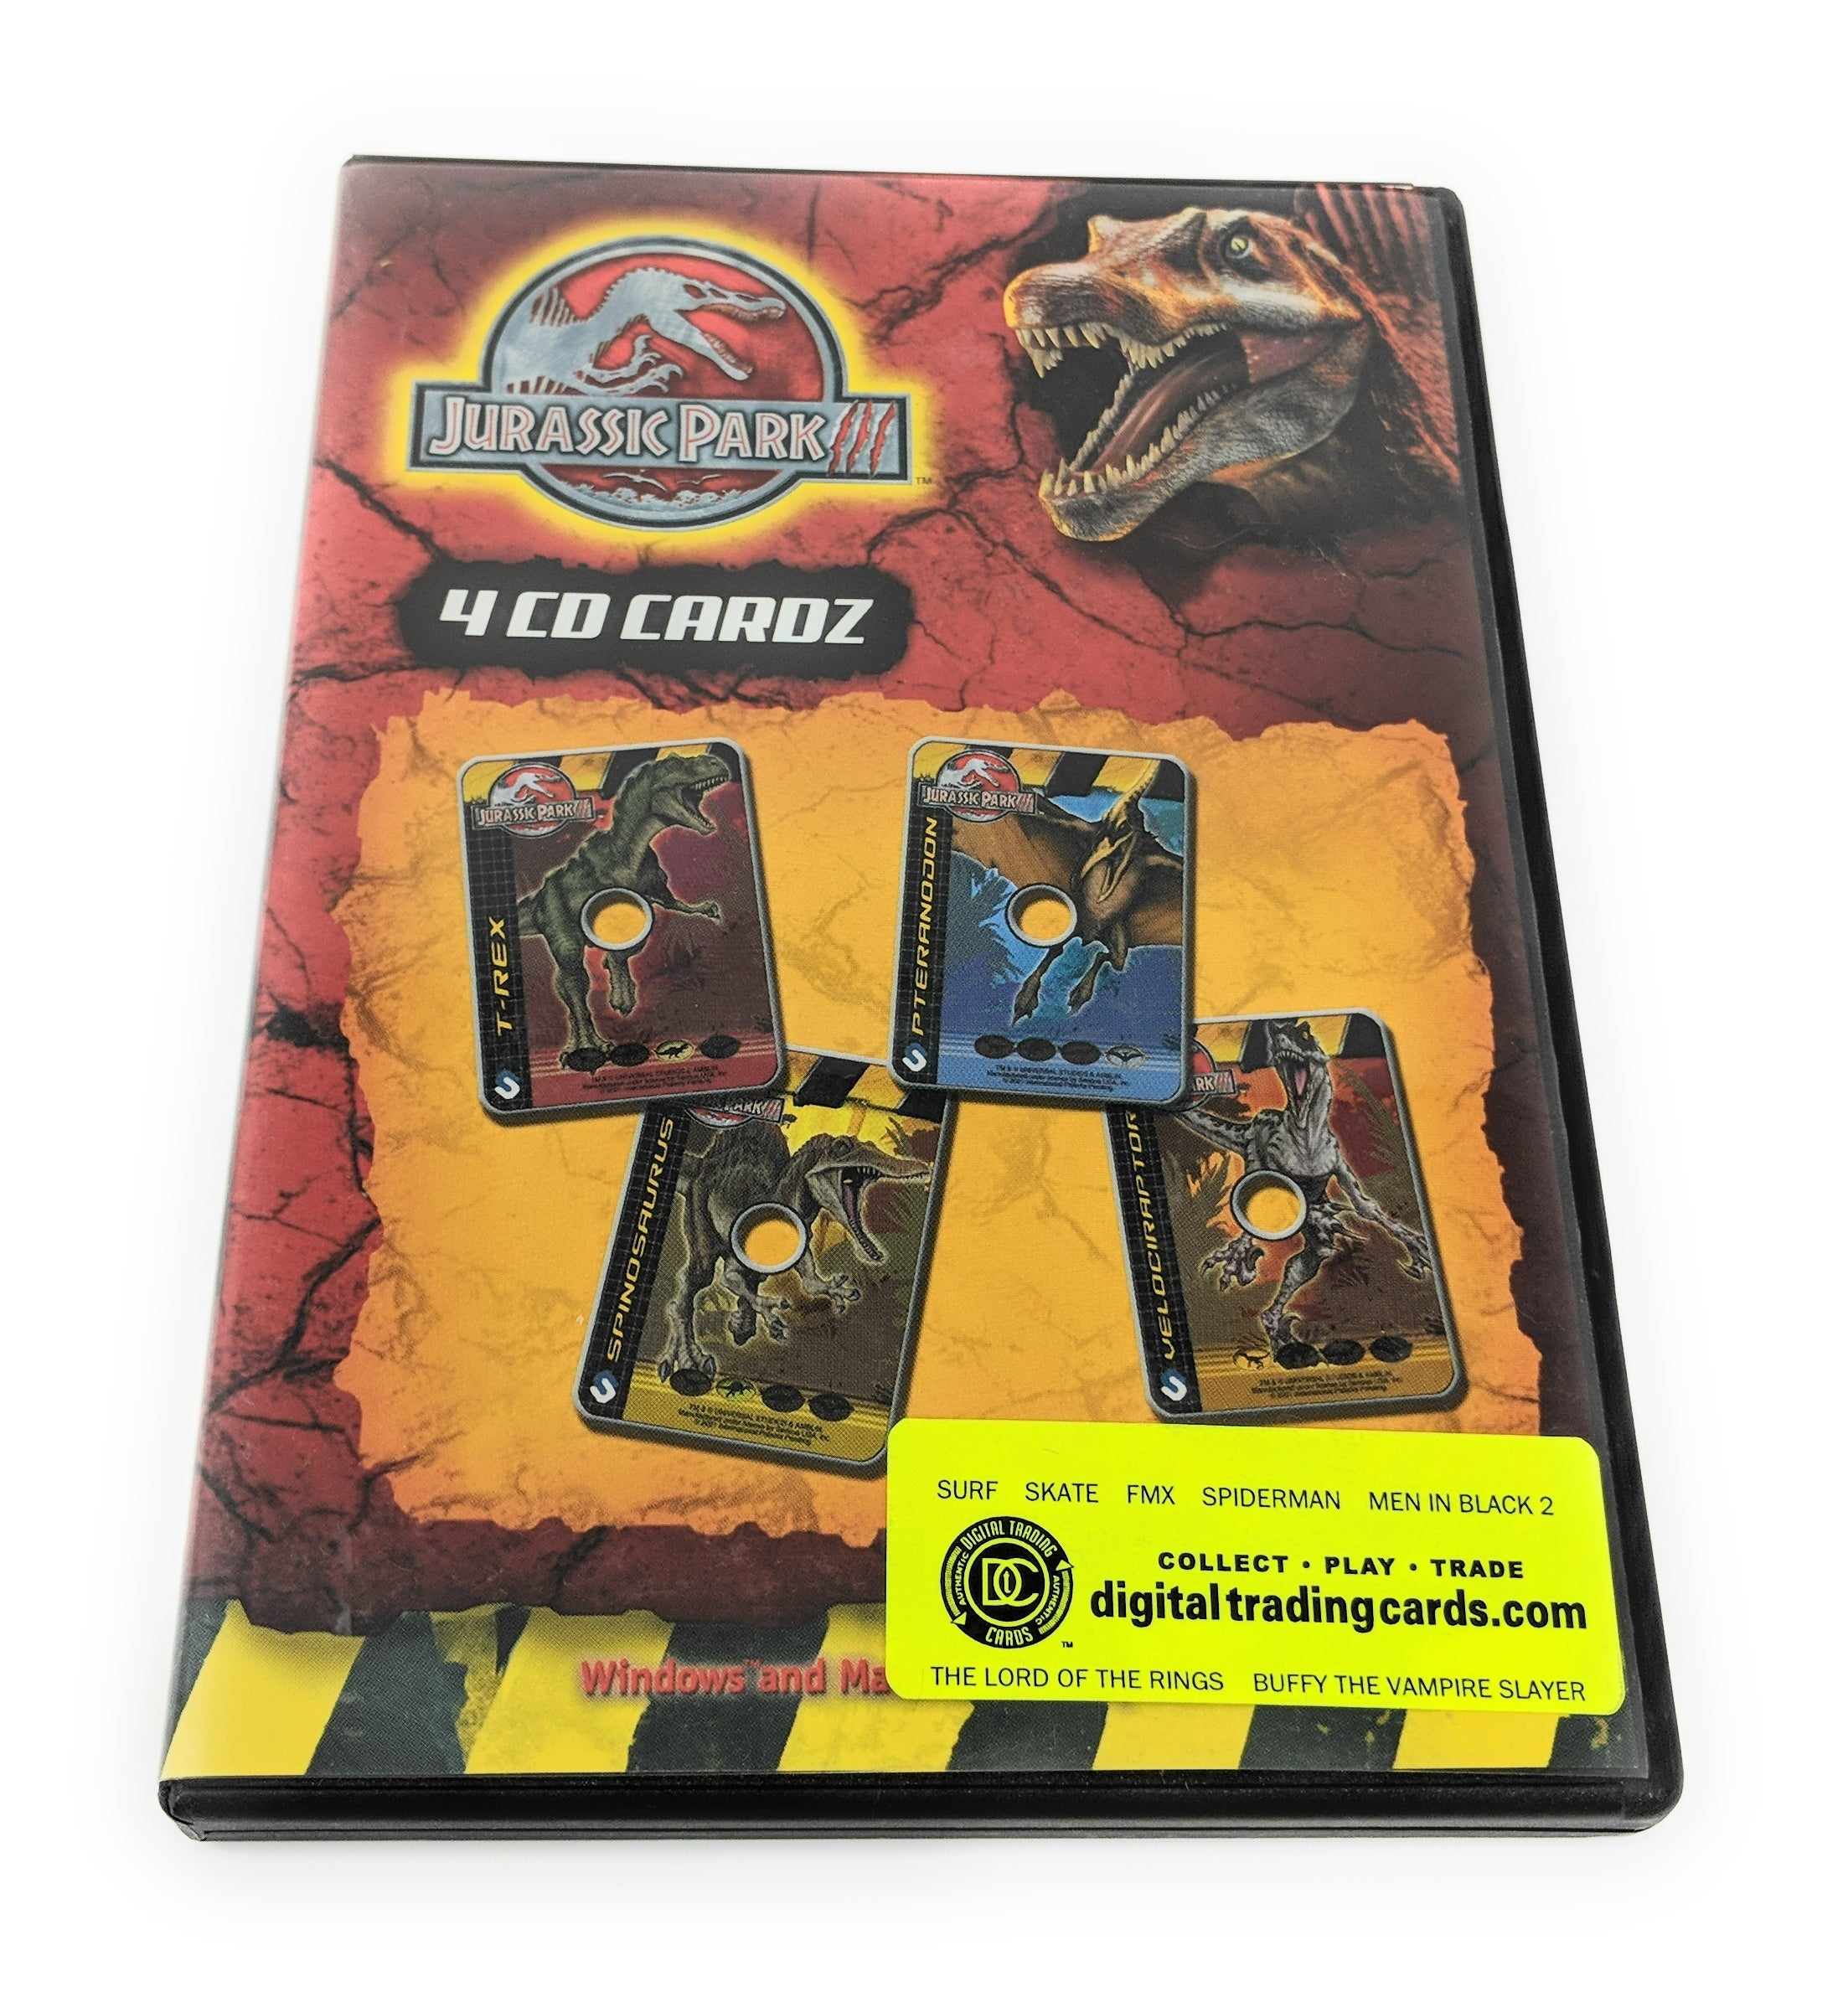 "Jurassic Park III Digital Trading Cards - Contains 4 CD-Rom ""Cardz"""